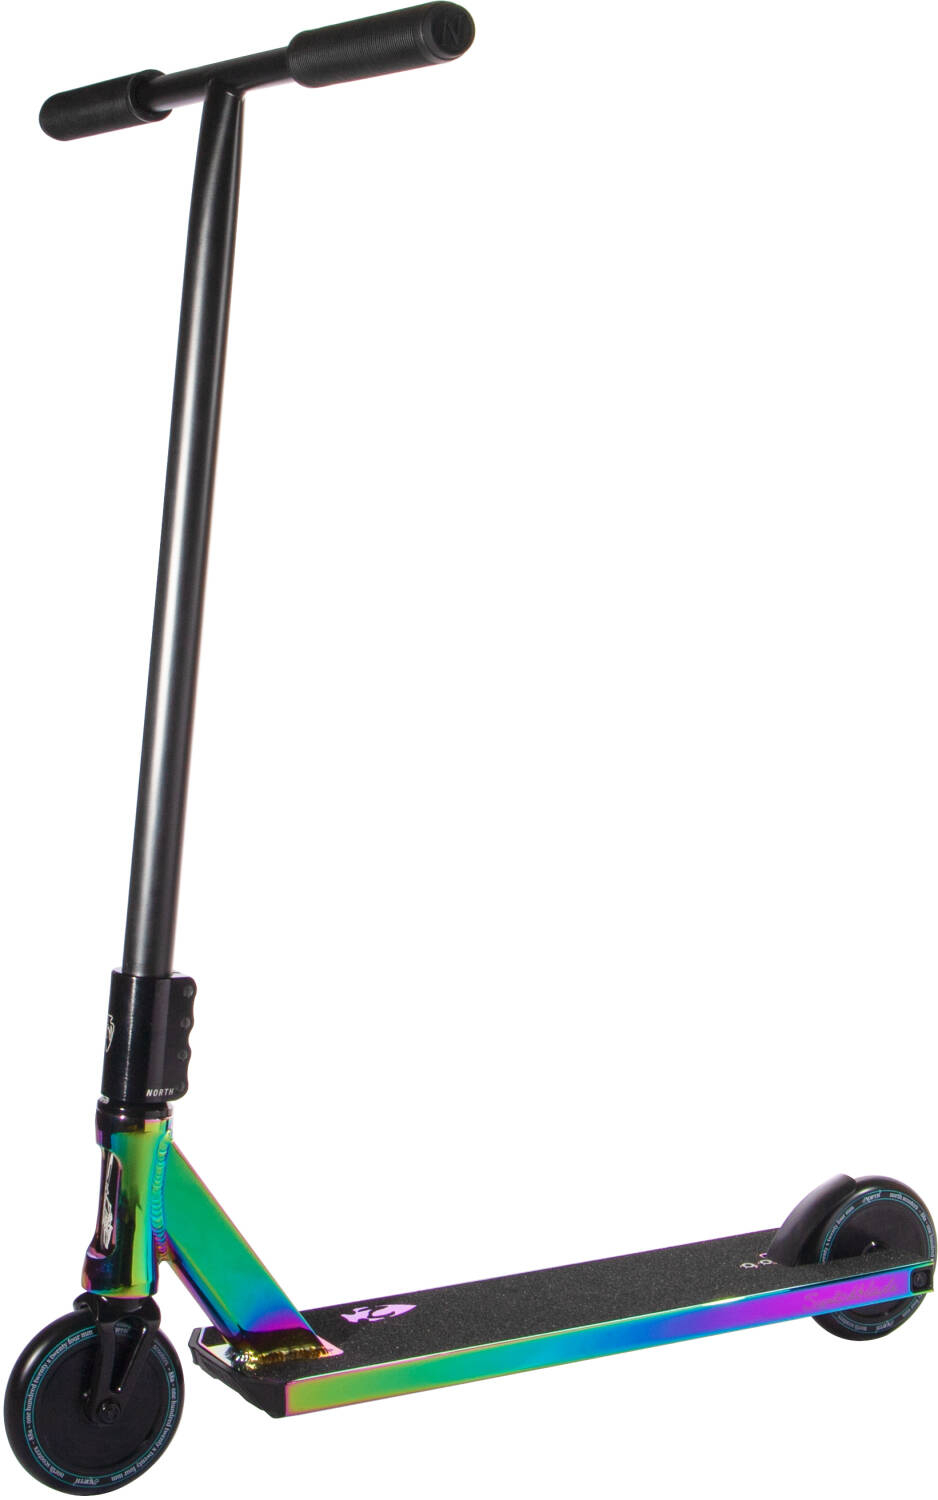 North Switchblade 2020 Pro Scooter